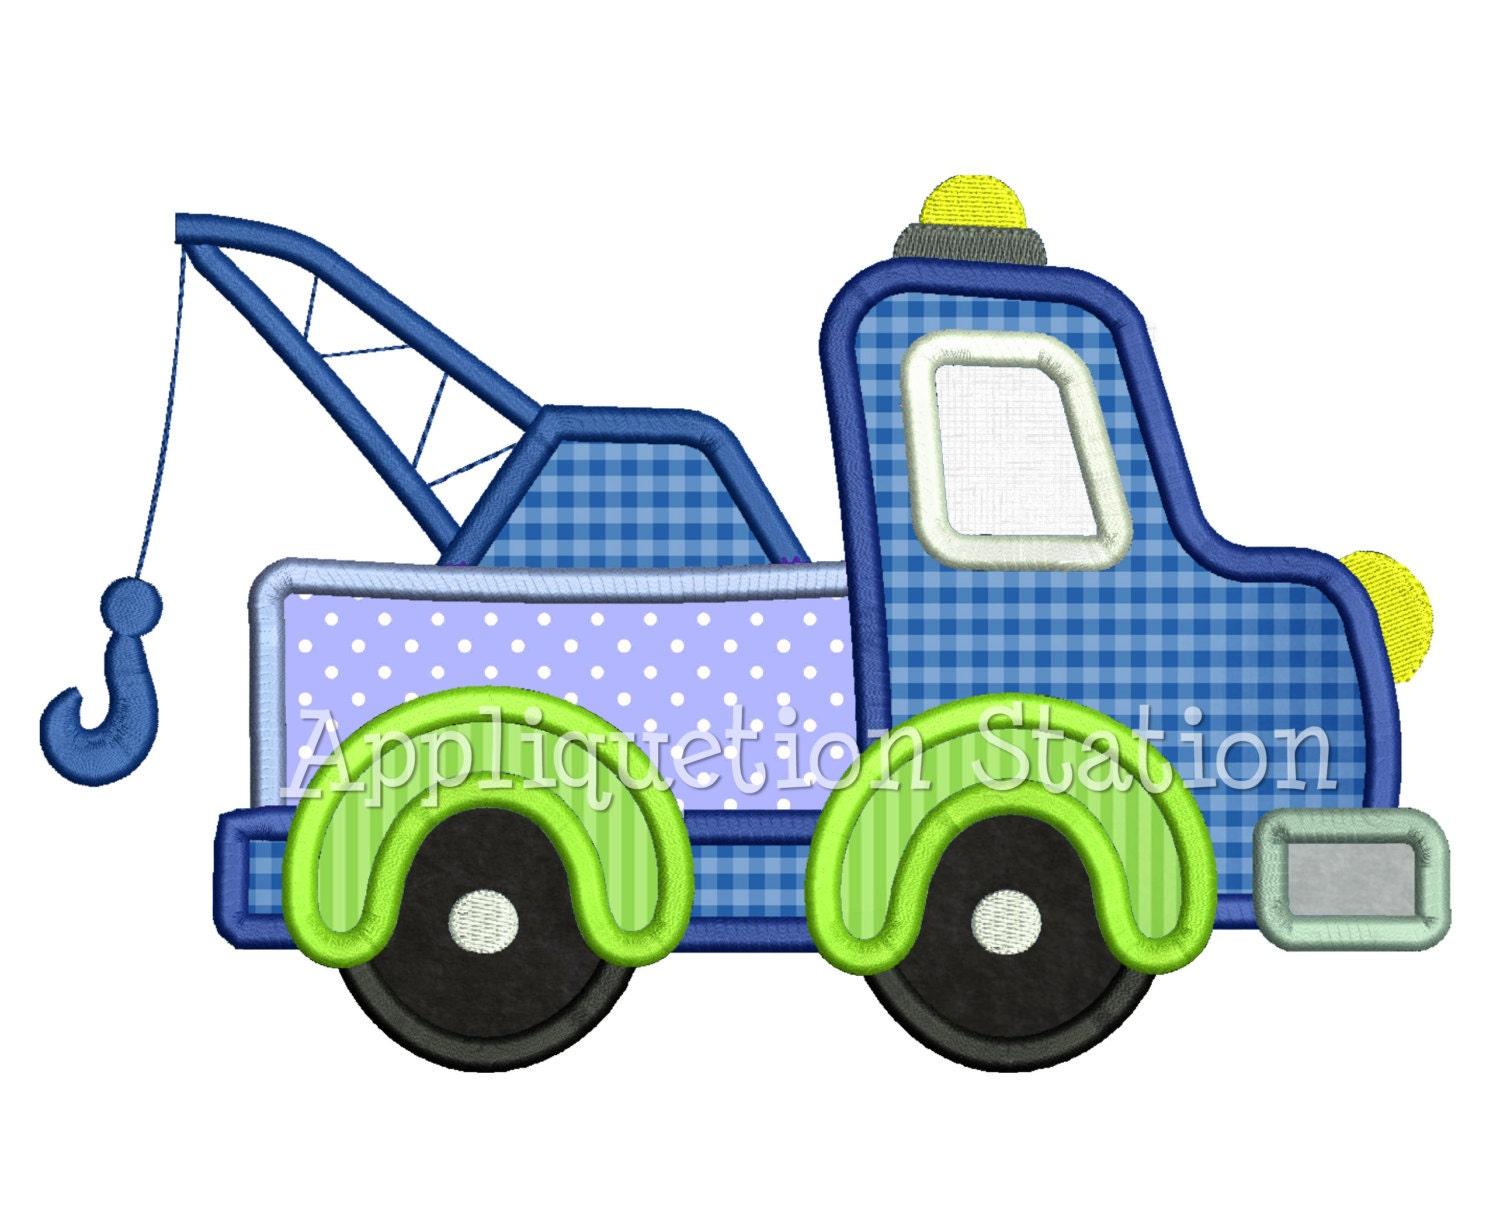 Tow truck applique machine embroidery design blue green